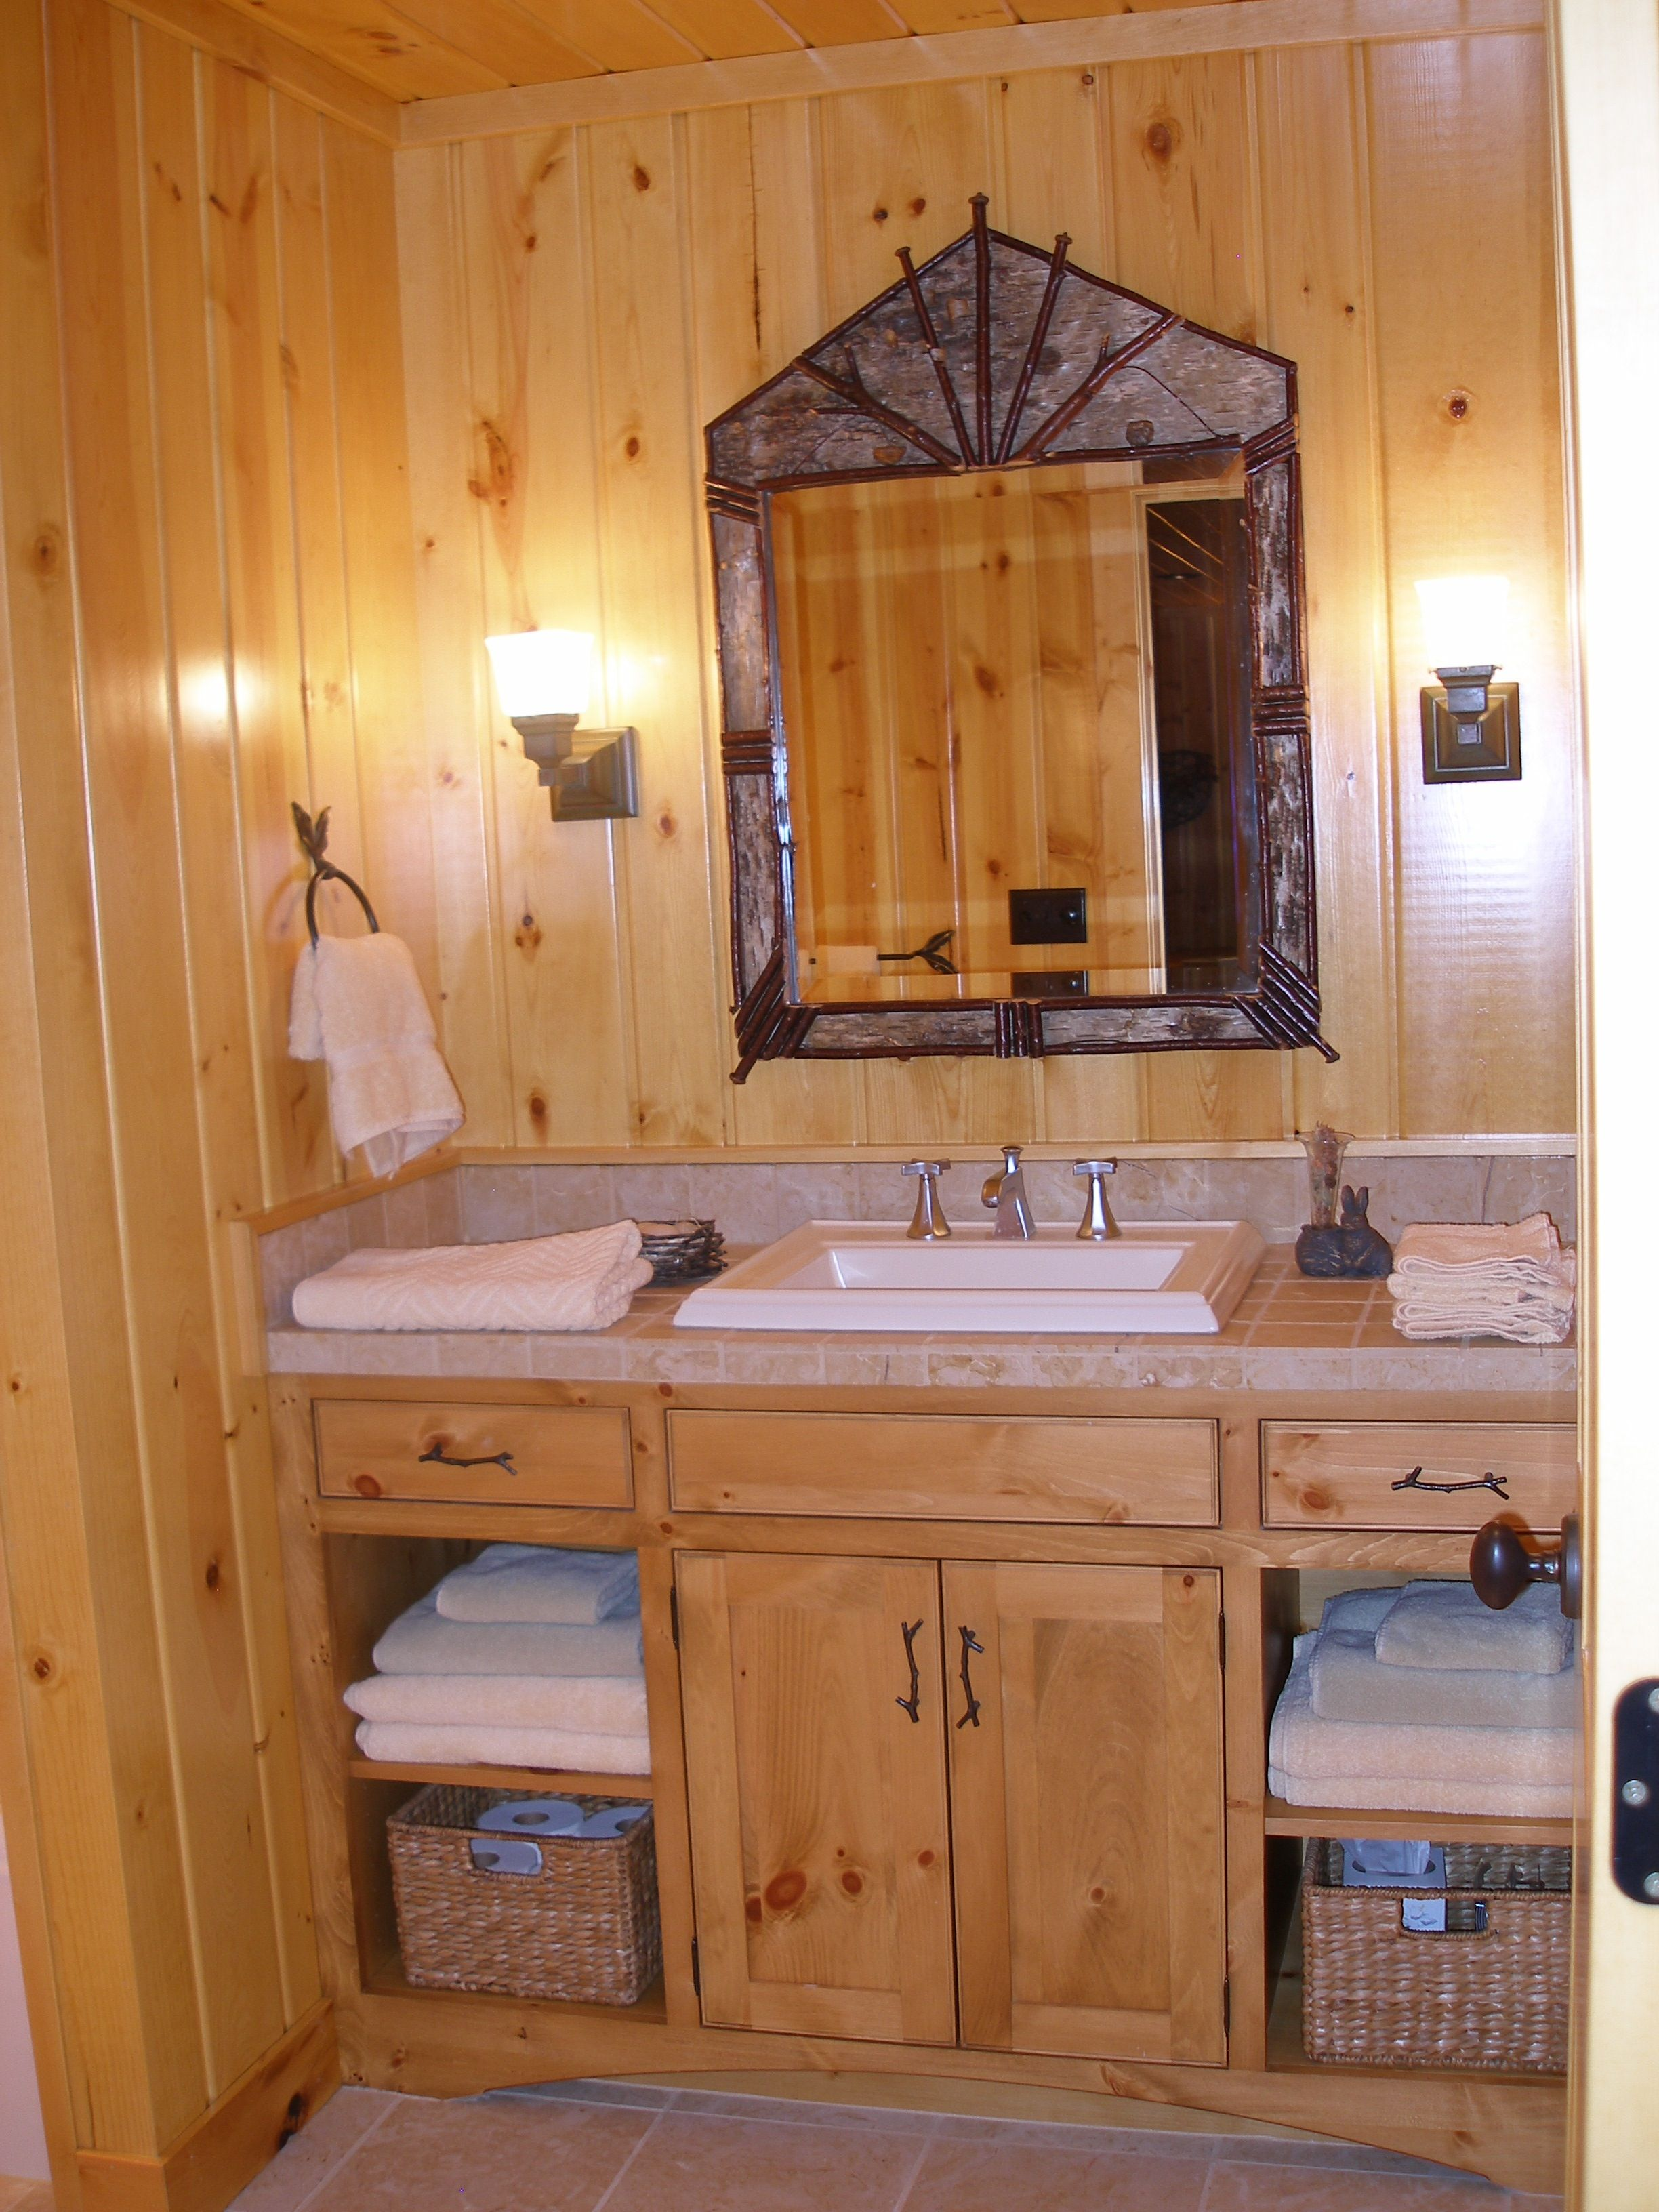 A lower level guest bathroom, in a log home in Phelps, WI. The